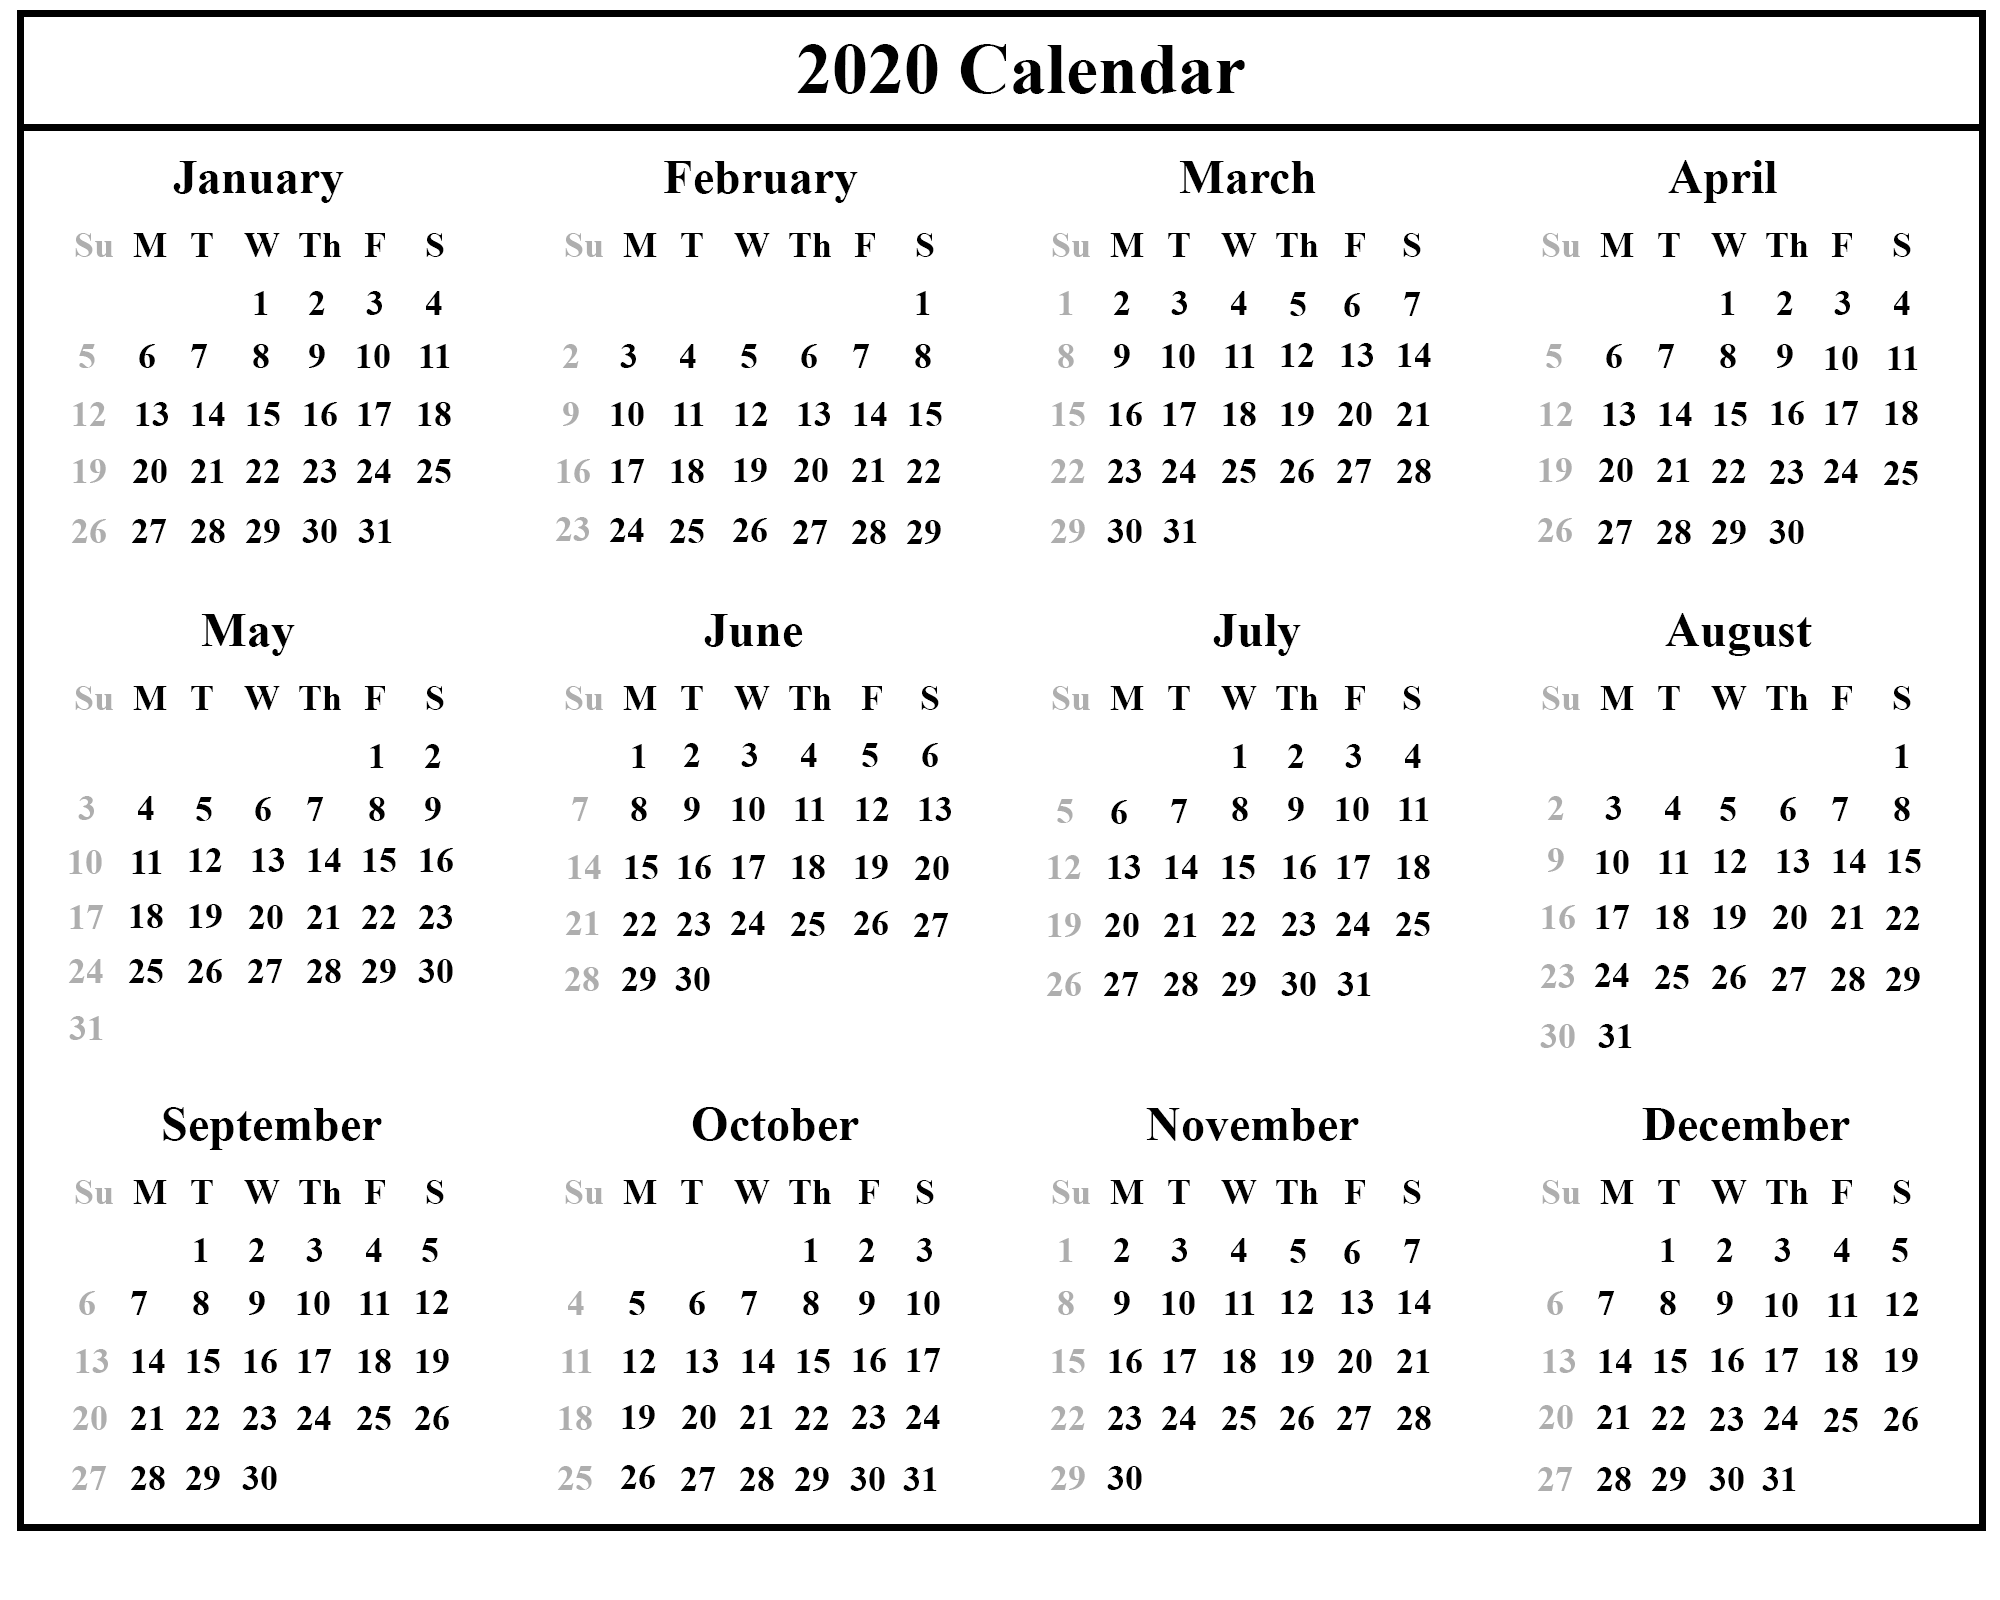 Download This Free 2020 Printable Calendar With A Simple Black And White Desi Free Printable Calendar Templates Calendar Printables Printable Calendar Template